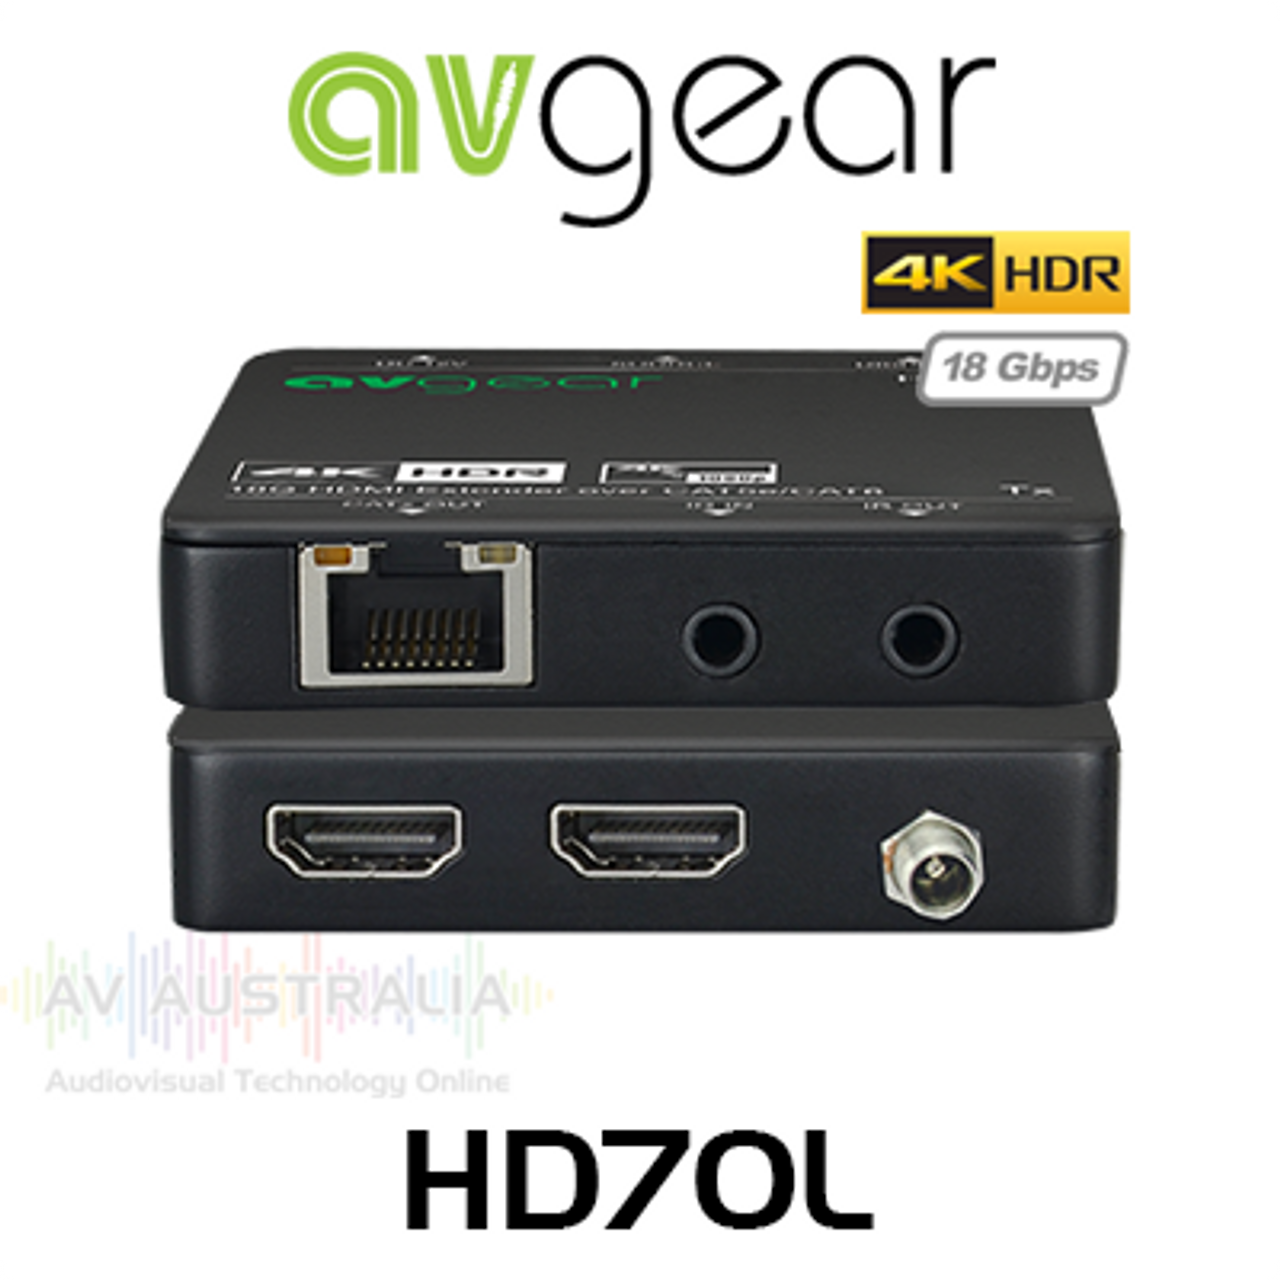 AVGear HD70L 4K HDR HDMI 2.0 Extender Set w/ Loop Out (up to 70M)